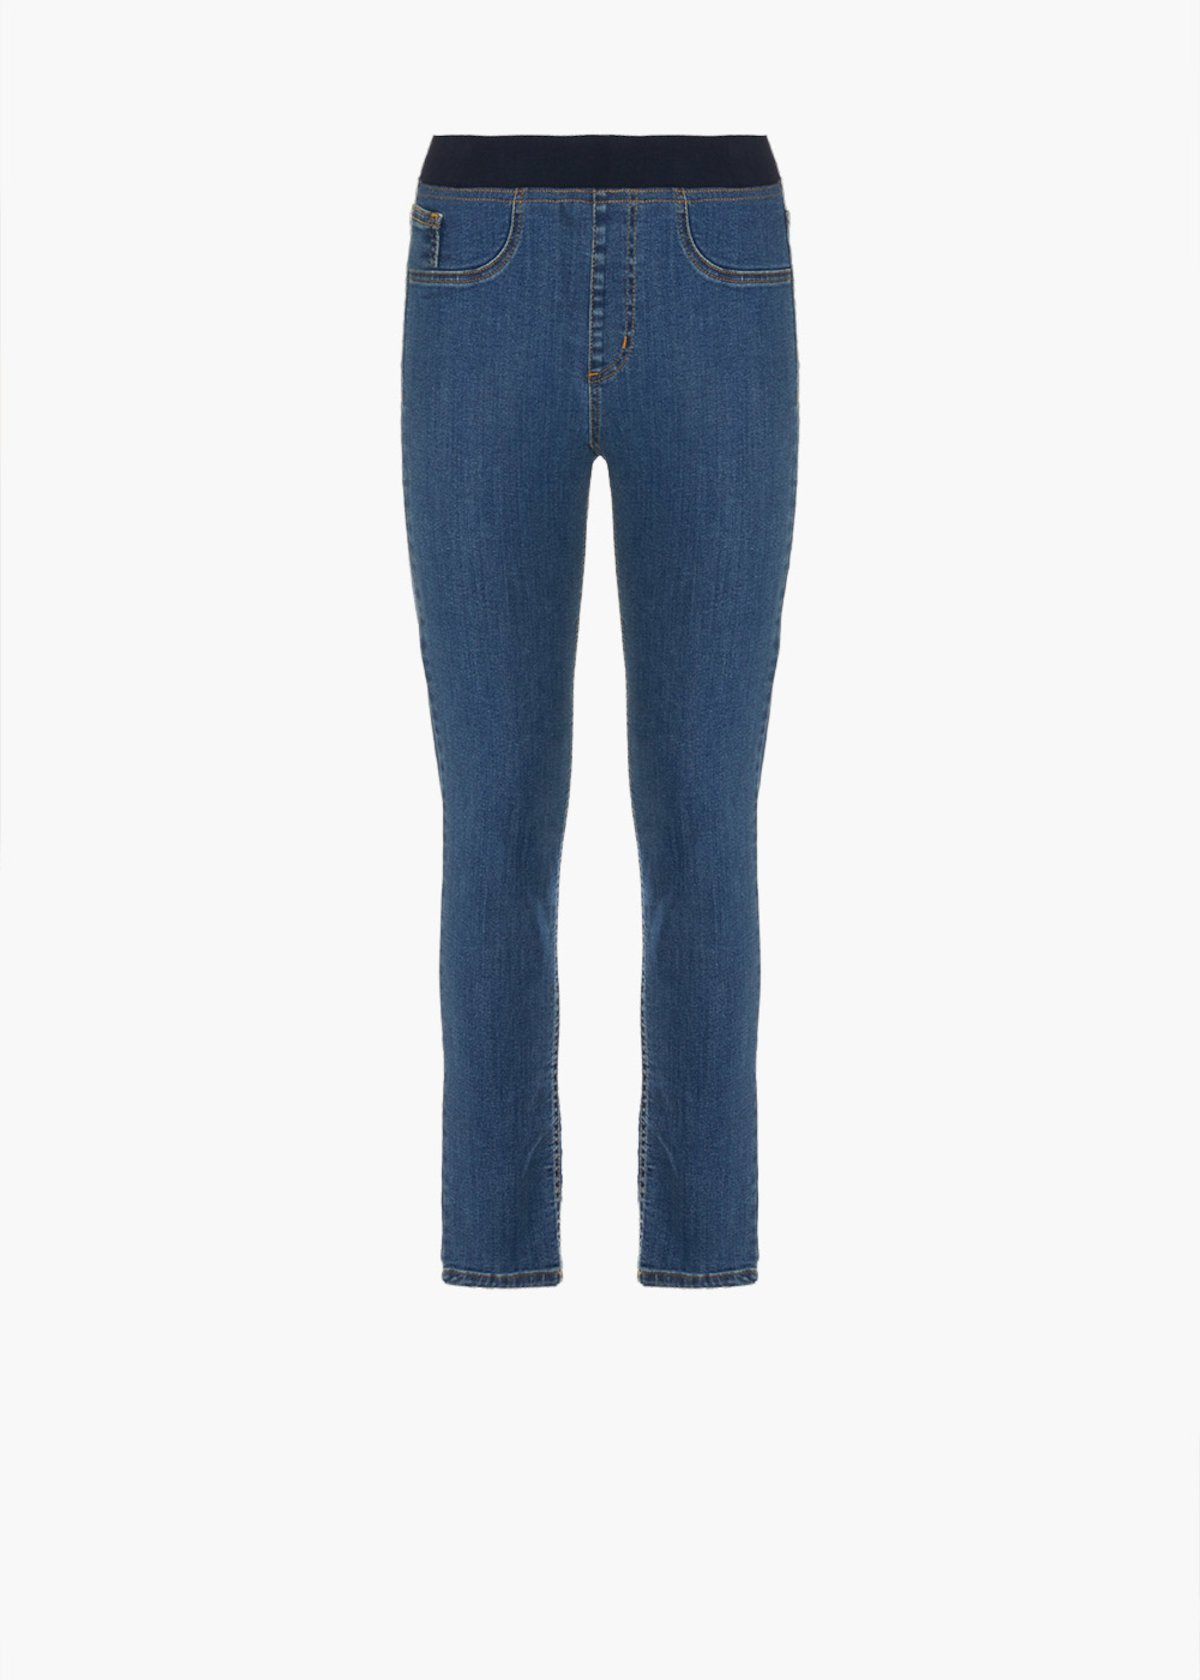 Jeggins Darlin with eleastic and honey-colored broguing - Blue - Woman - Category image